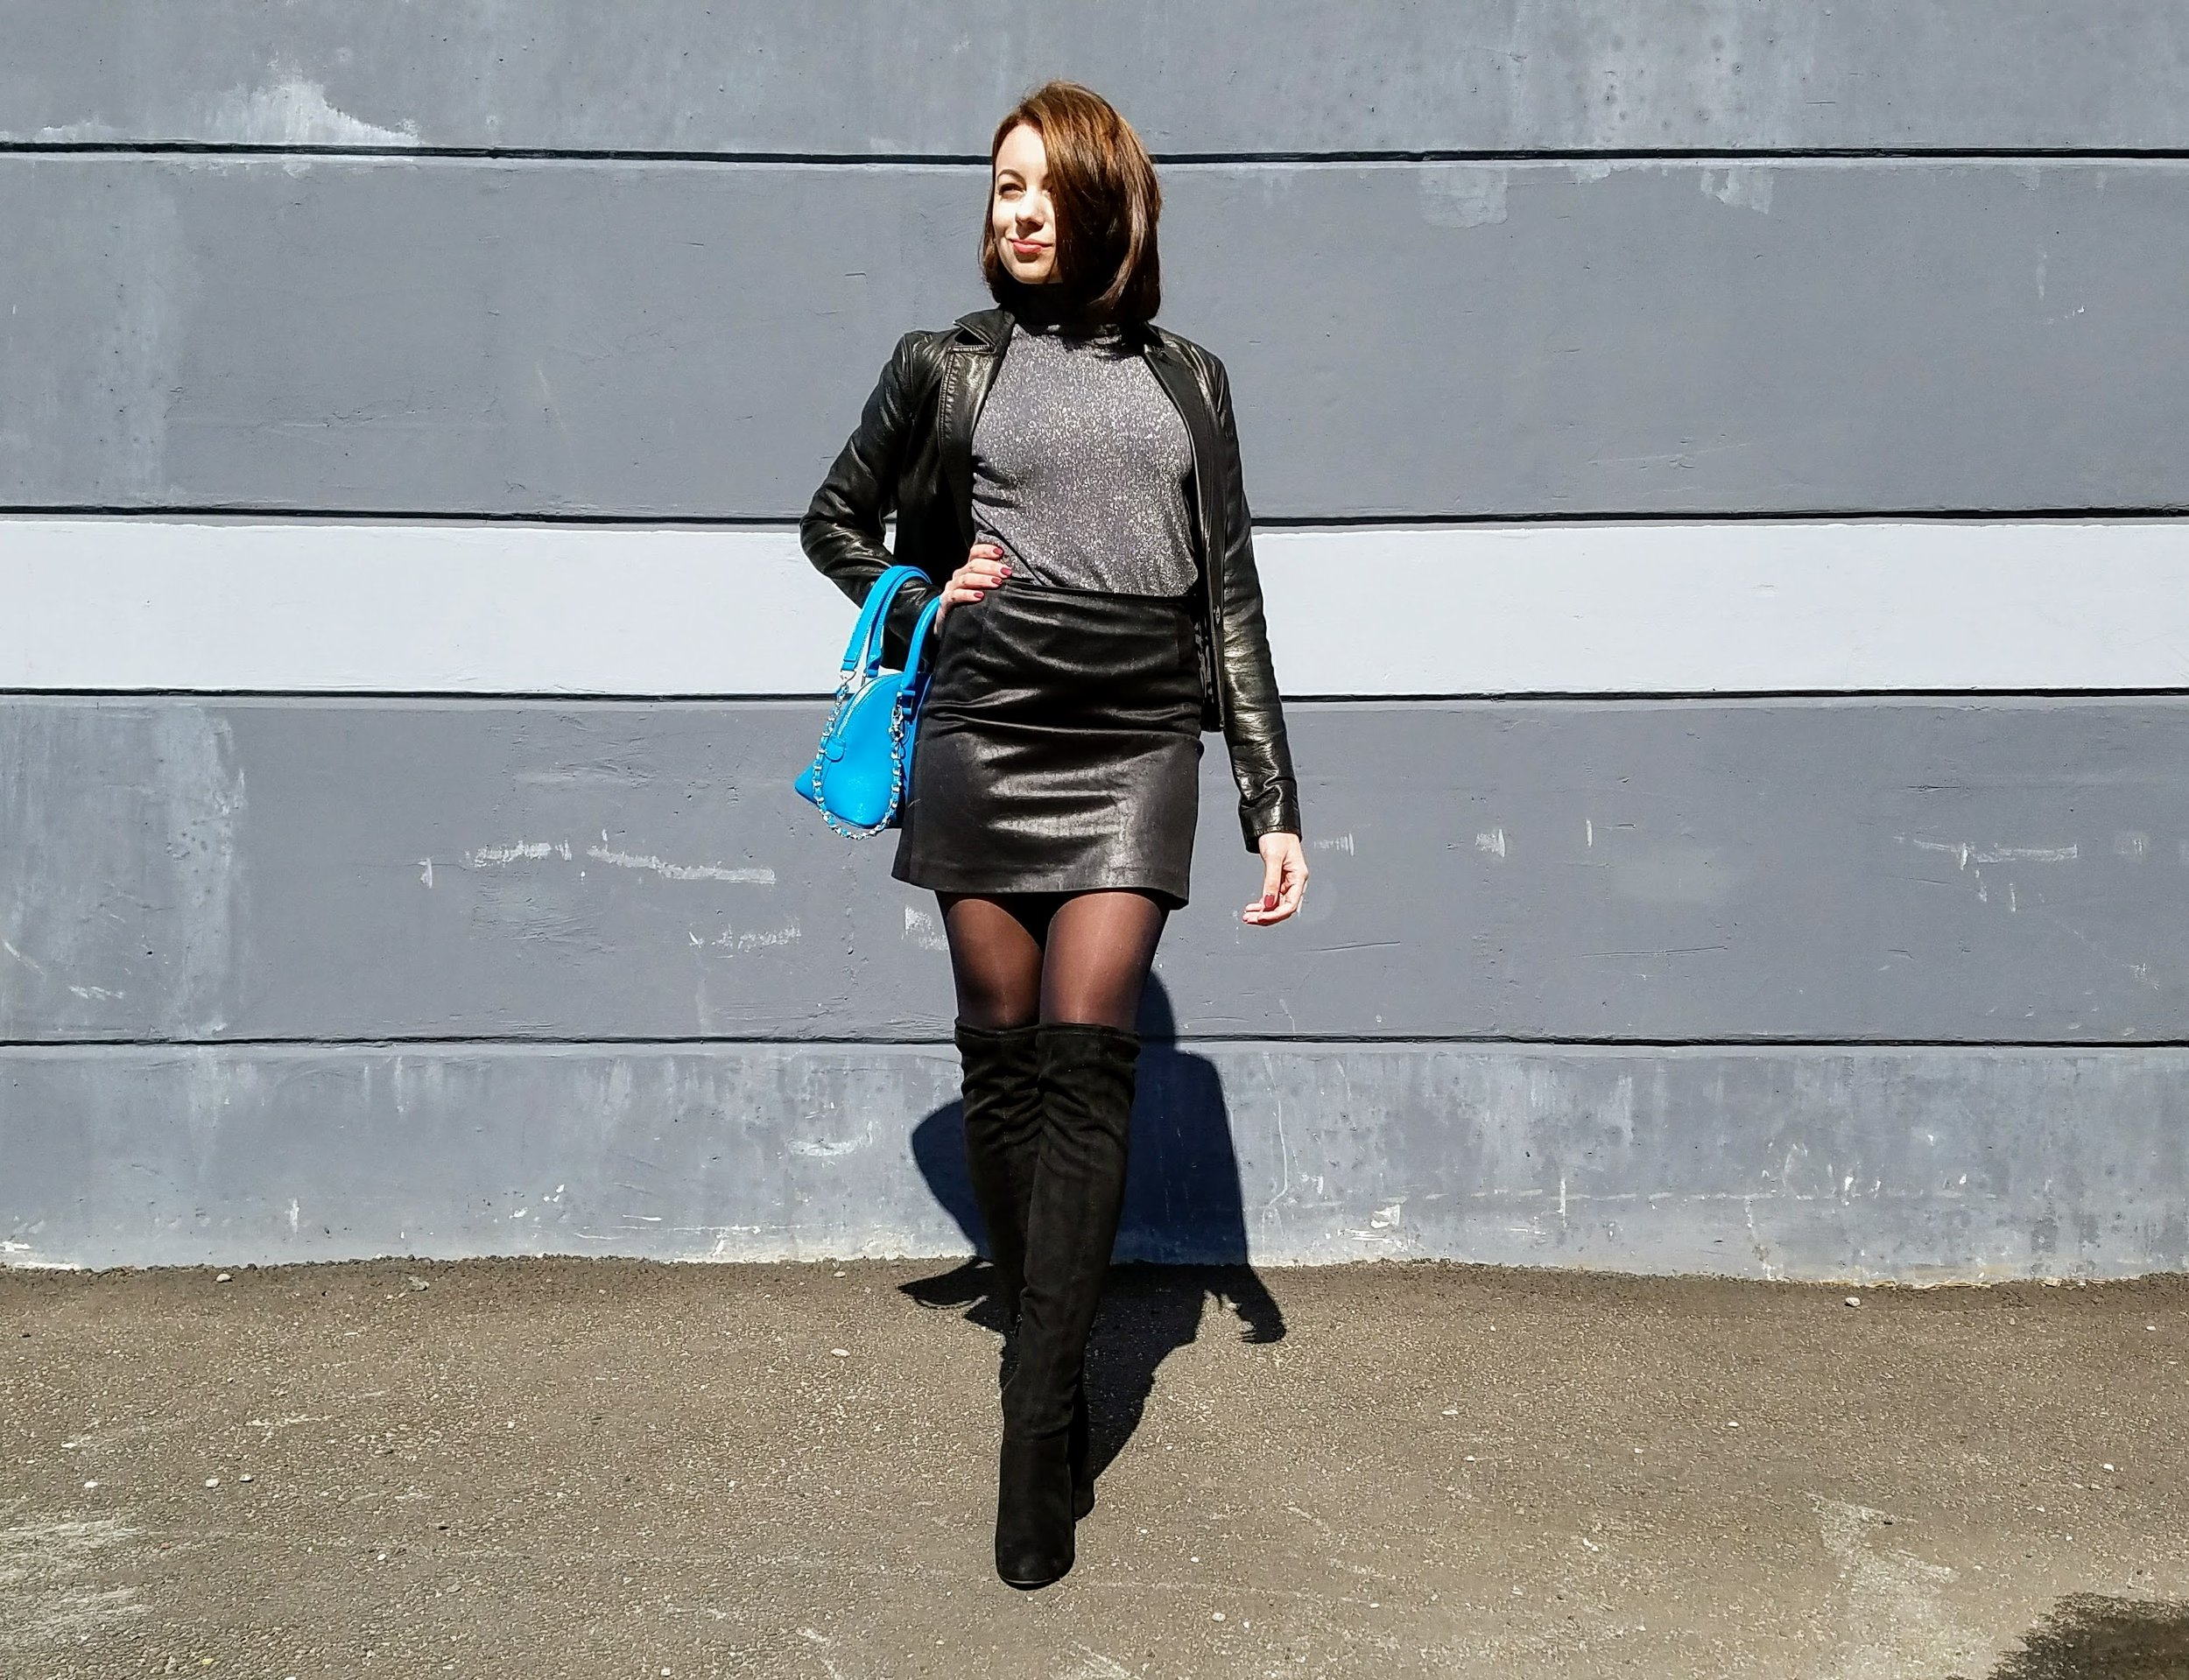 Black leather skirt and jacket, black thigh high boots, blue bag, gray turtleneck.